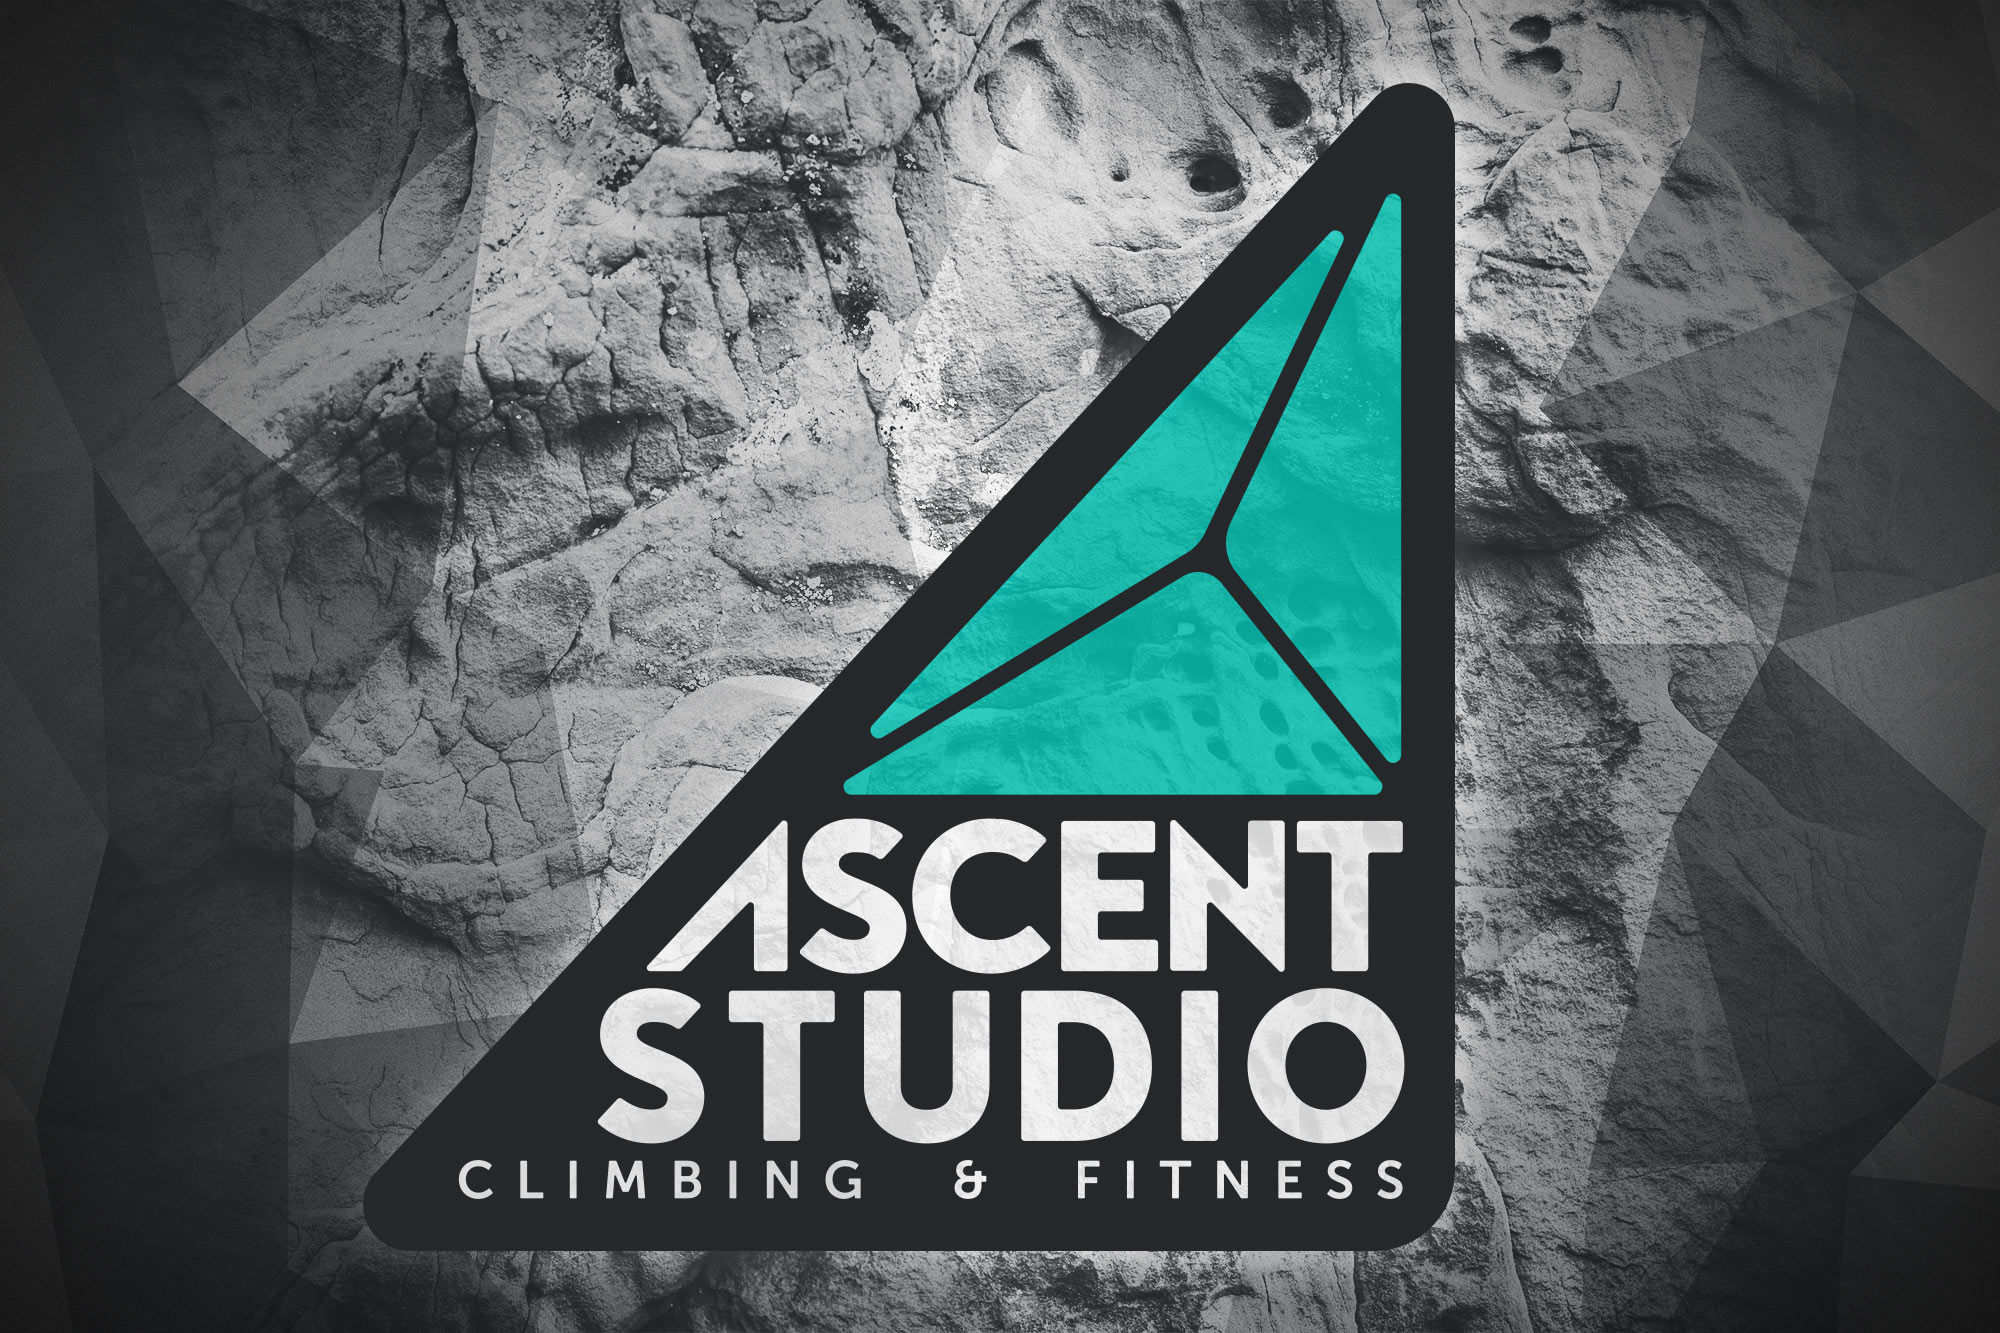 ascent_studio-1.jpg